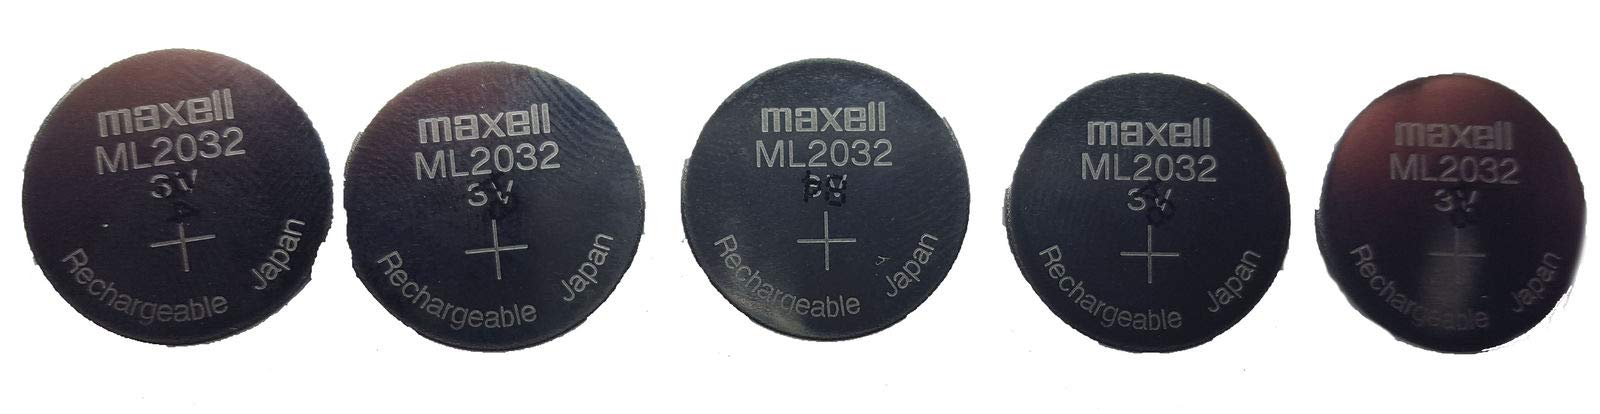 PCRepair 5X Original Maxell ML2032 ML 2032 3V Rechargeable Lithium RTC Bios CMOS Battery